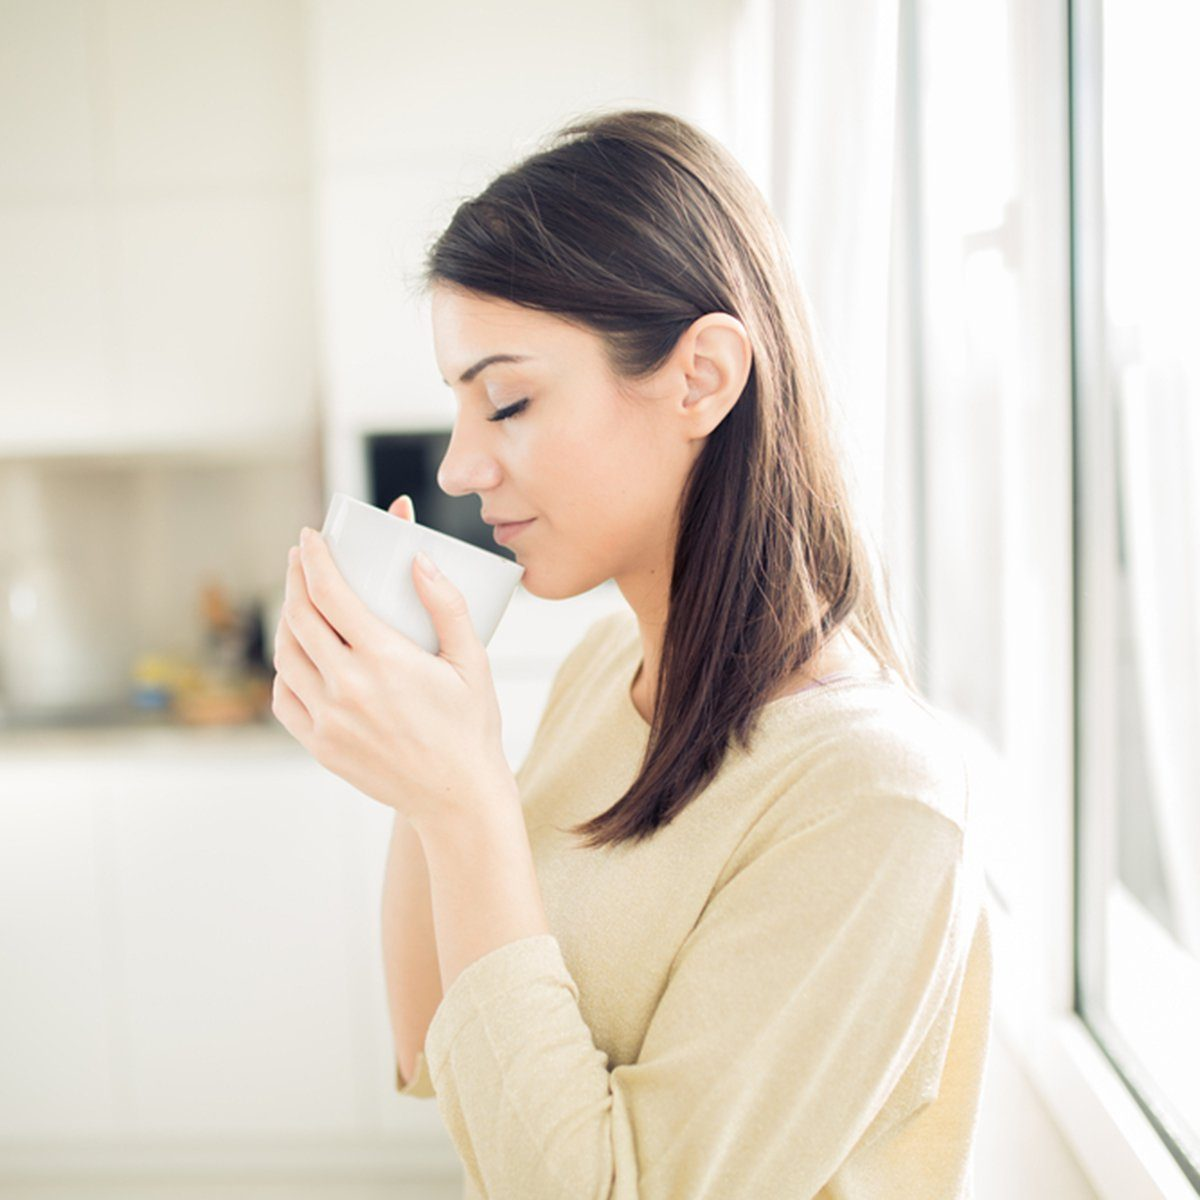 Modern working woman lifestyle-drinking coffee or tea in the morning in the kitchen,starting your day.